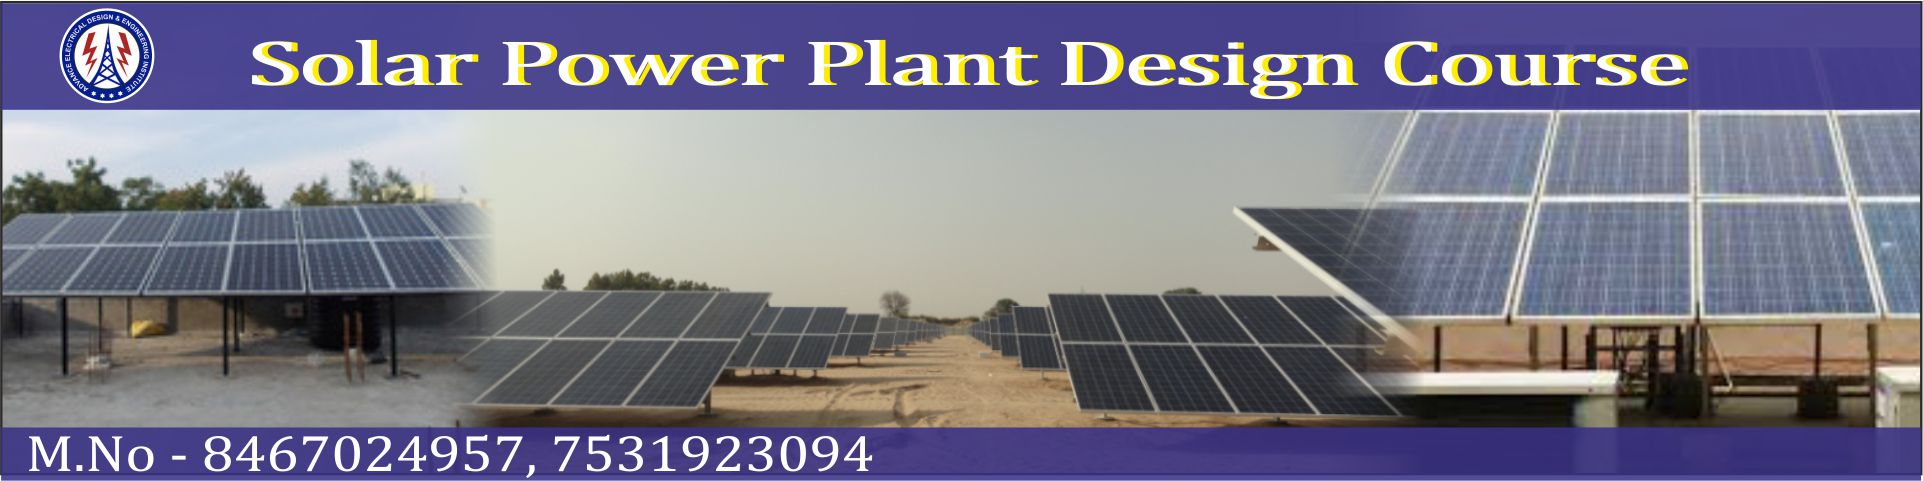 Solar power plant design course in delhi